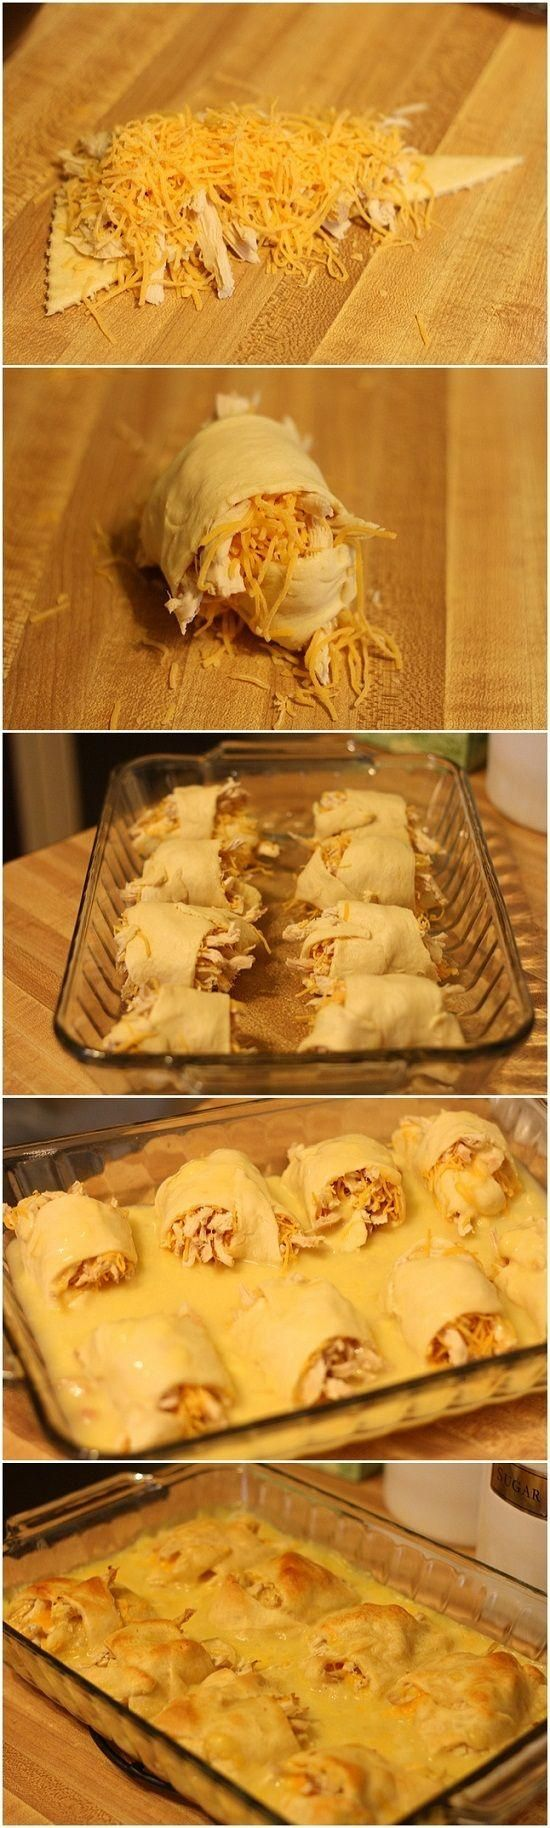 2-3 chicken breasts, baked or boiled and then shredded. 1 tube of crescent rolls, 1 can cream of chicken soup, Shredded cheddar cheese. Preheat oven to 375, roll up cheese and chicken in each crescent. Place in a 13 x 9 baking dish, mix 1/2 cup water with the soup and pour over all. Bake for 20-25 min or until golden brown. Easy and tasty! We cook the rolls w/chicken 1st & add a can of chicken a la king with the soup!! Yummy!!! THUMBS UP